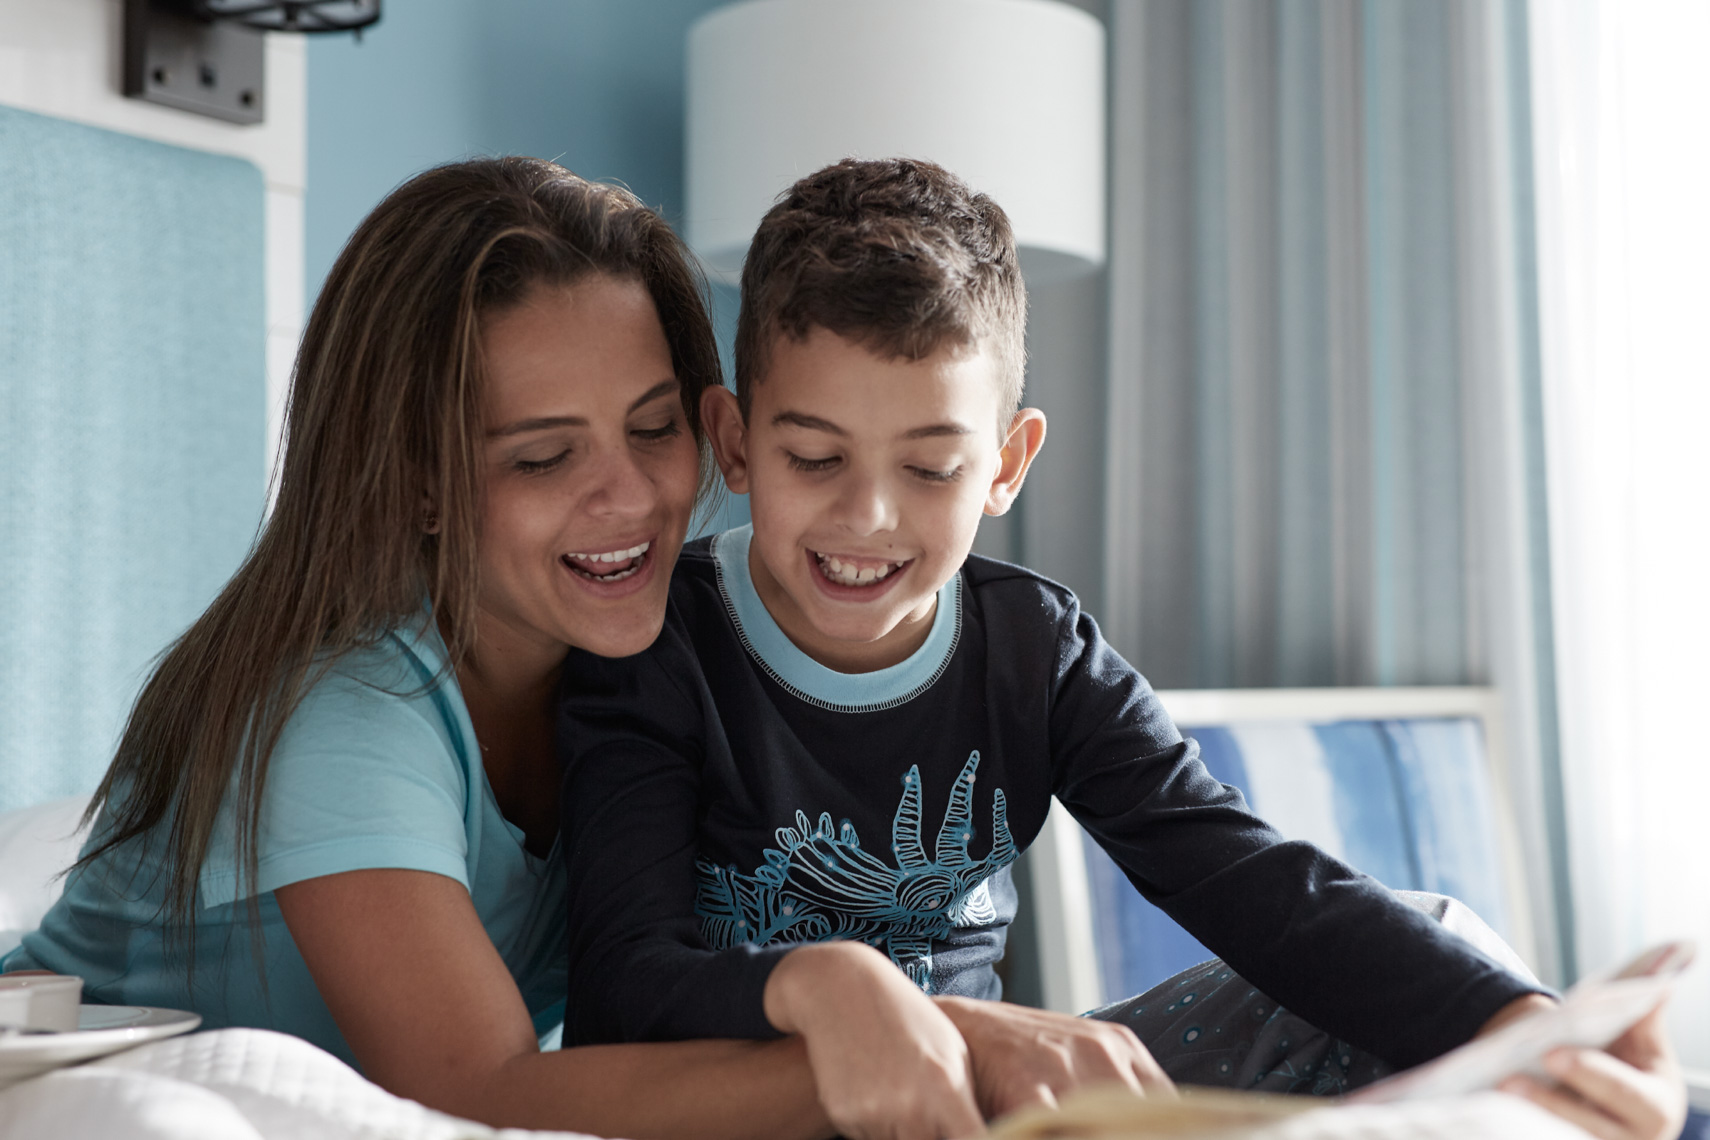 Mother and child laughing and looking at  a resort map in blue hotel room